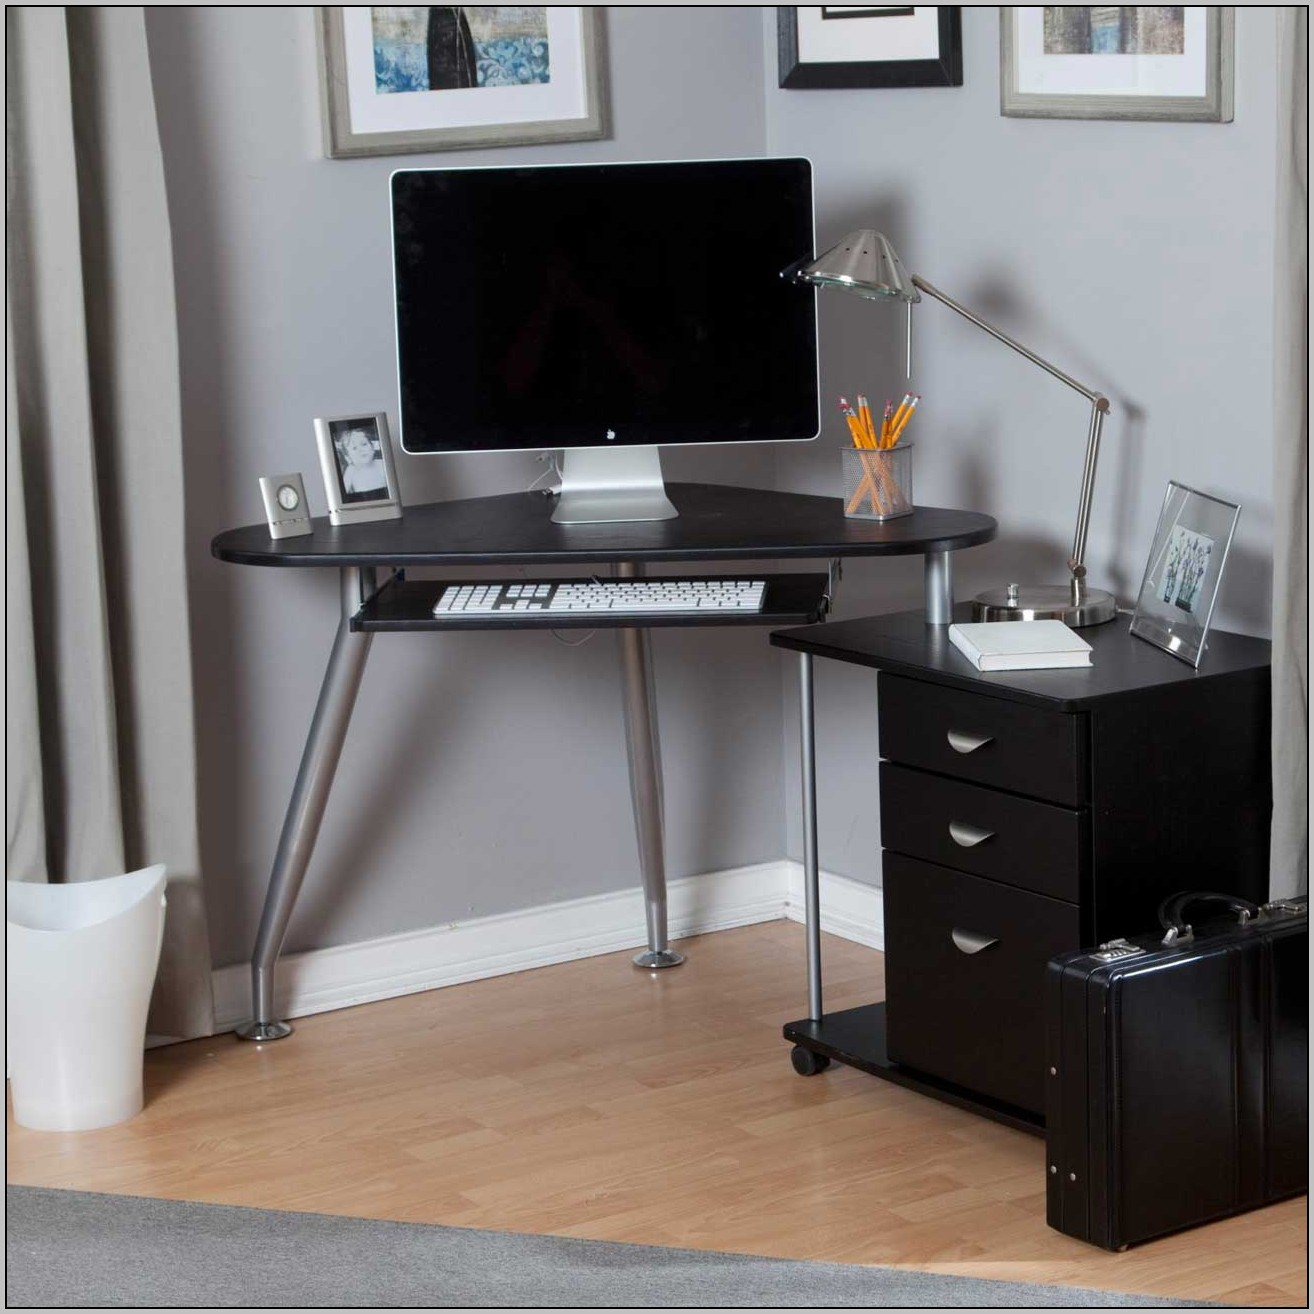 Small desks for small spaces ikea desk home design ideas ord5rrbqmx25755 - Desk for small spaces ikea ...